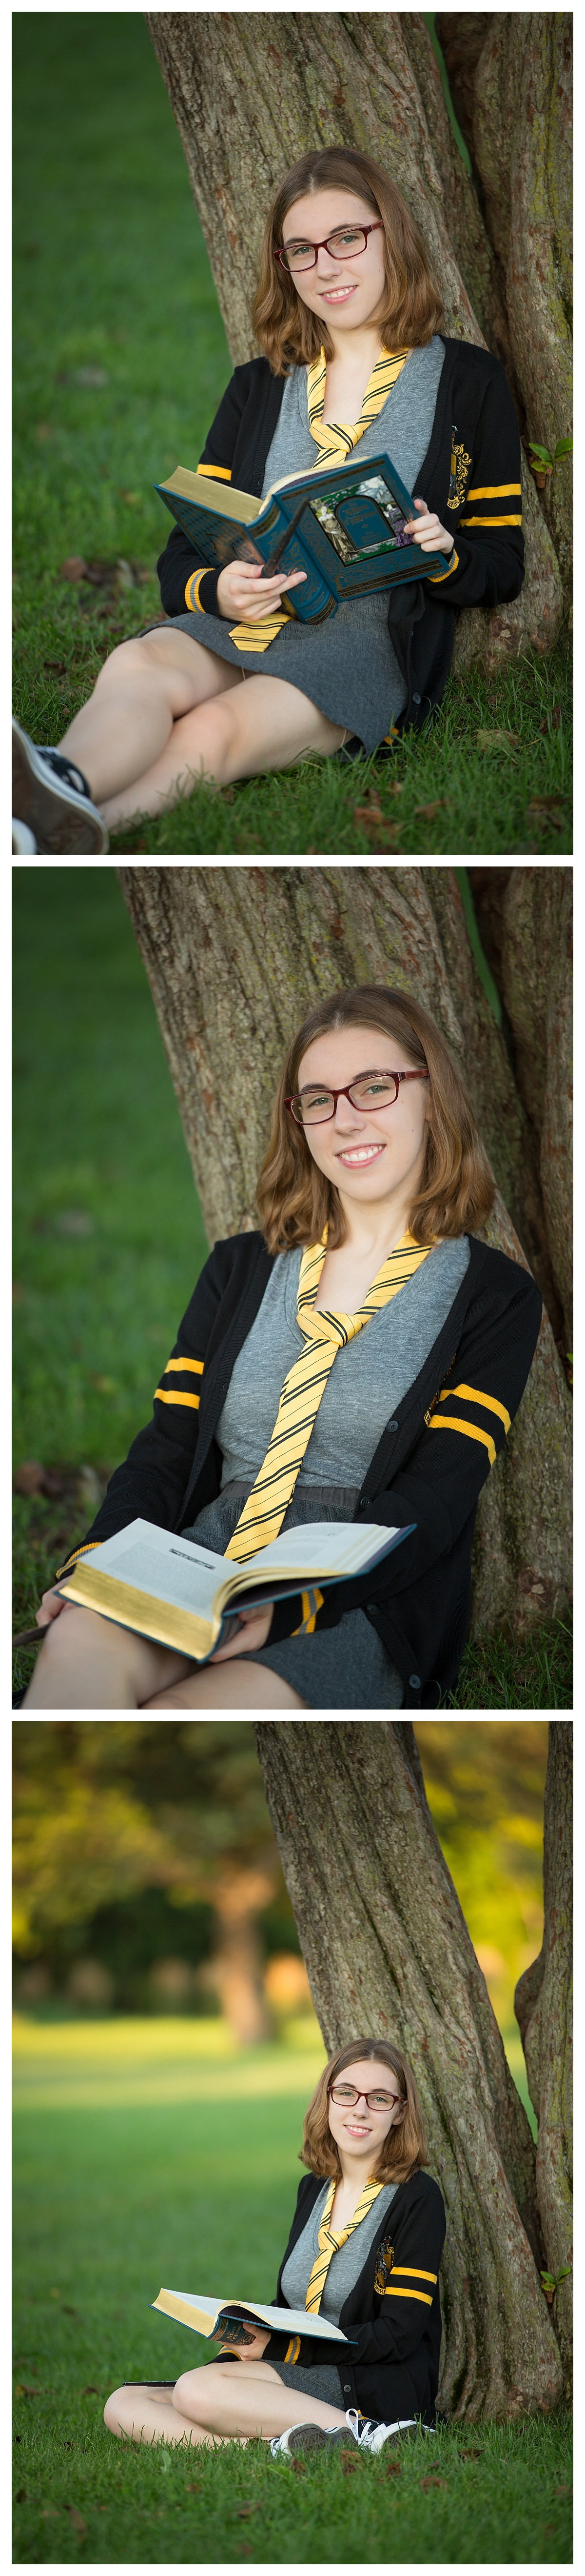 Rochester Park Senior Portraits with Harry Potter style book reading